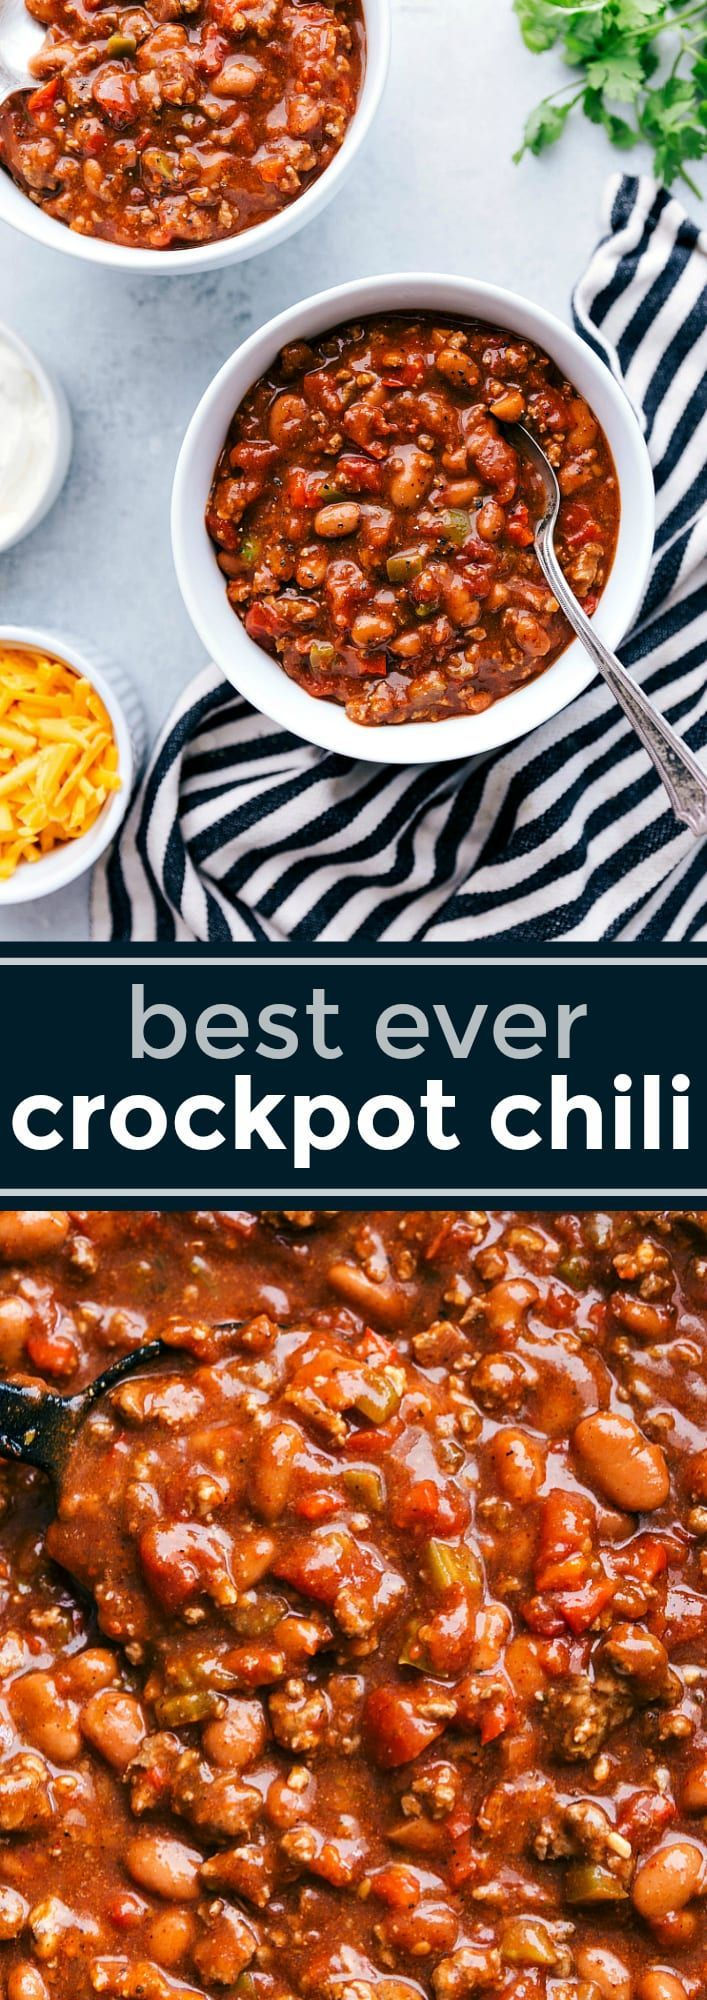 A delicious crockpot chili with dozens of 5-star reviews and winner of multiple chili cook-offs! This crockpot chili recipe winner is made with plenty of spice and packed with lots of flavor! via